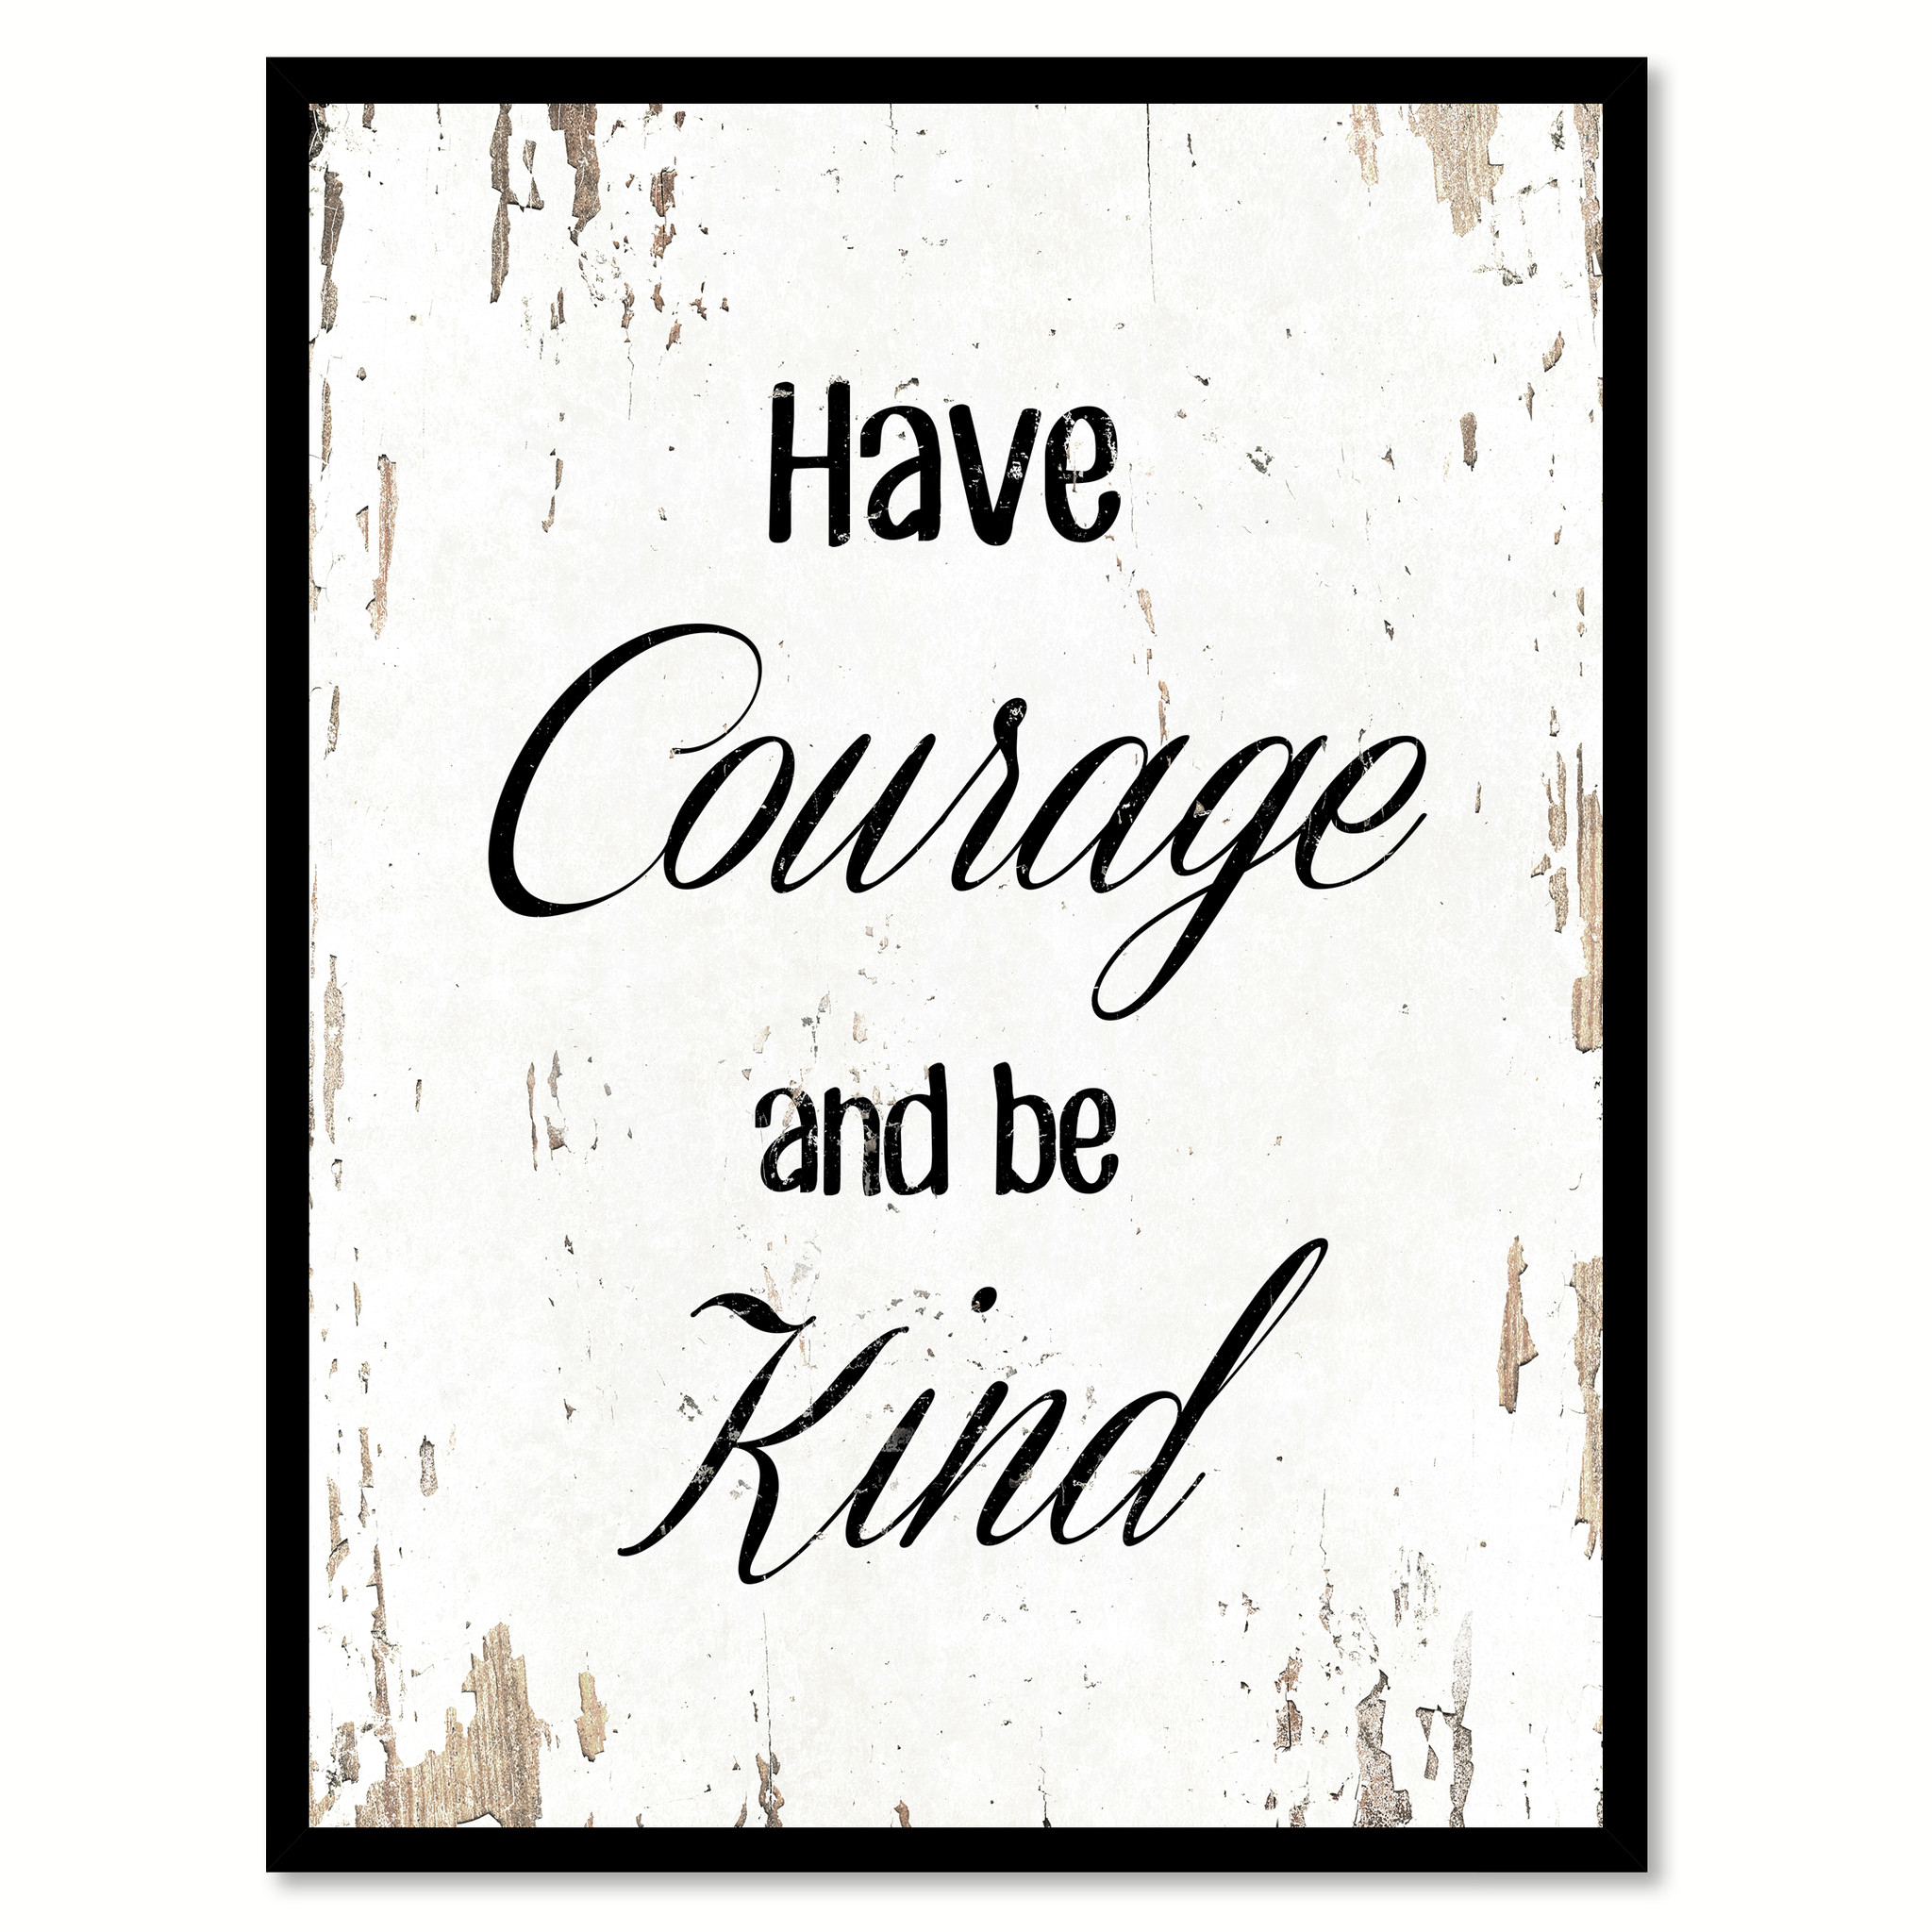 "Have Courage And Be Kind Motivation Saying Canvas Print with Picture Frame Home Decor Wall Art Gifts - 7""x9\"""